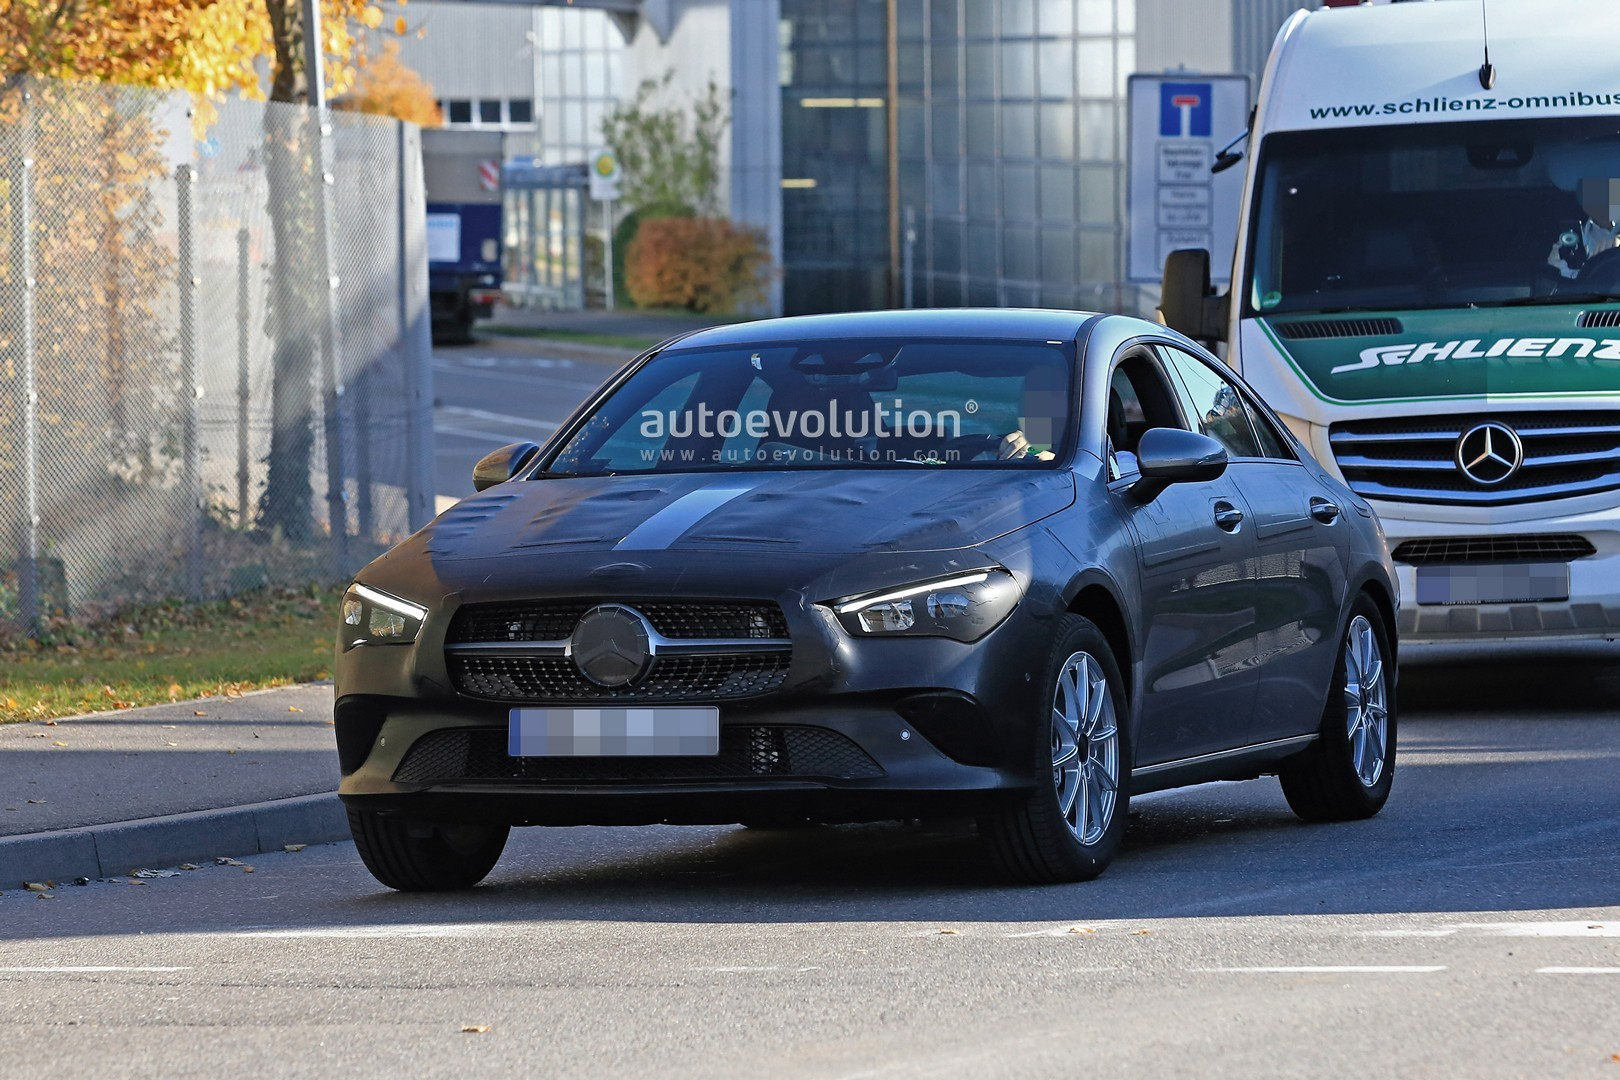 2019 - [Mercedes-Benz] CLA II - Page 4 New-mercedes-benz-cla-class-nearly-revealed-by-latest-spyshots_9